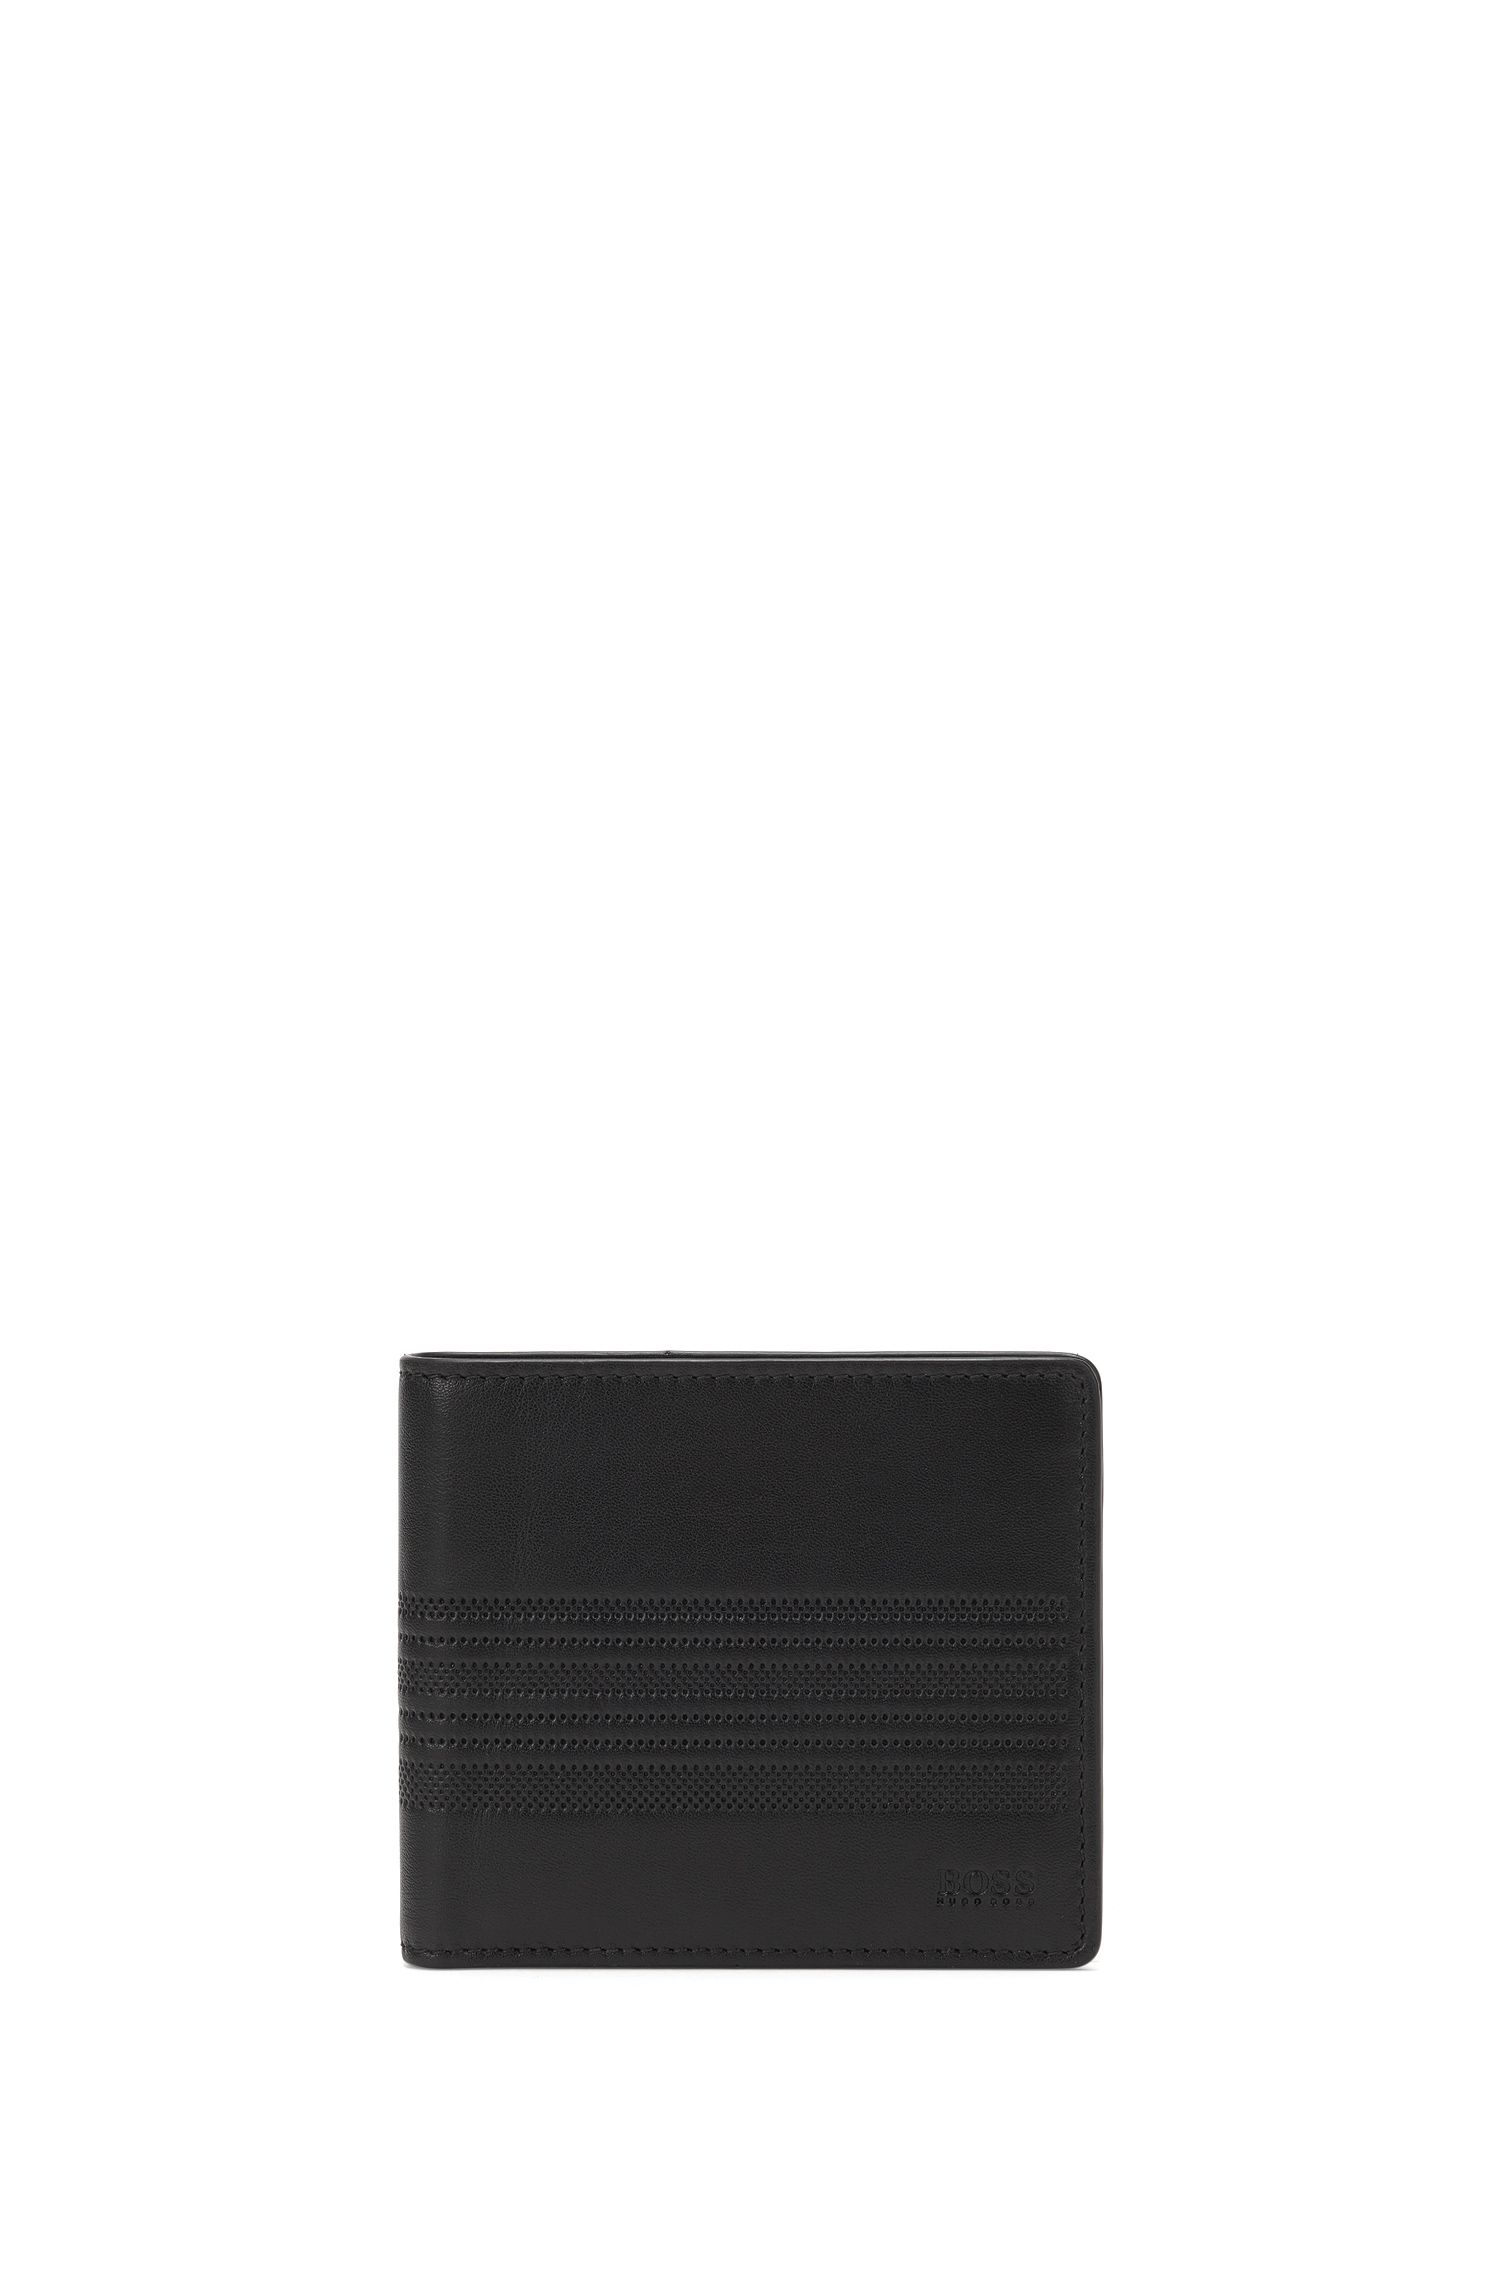 'S Card' | Leather Wallet